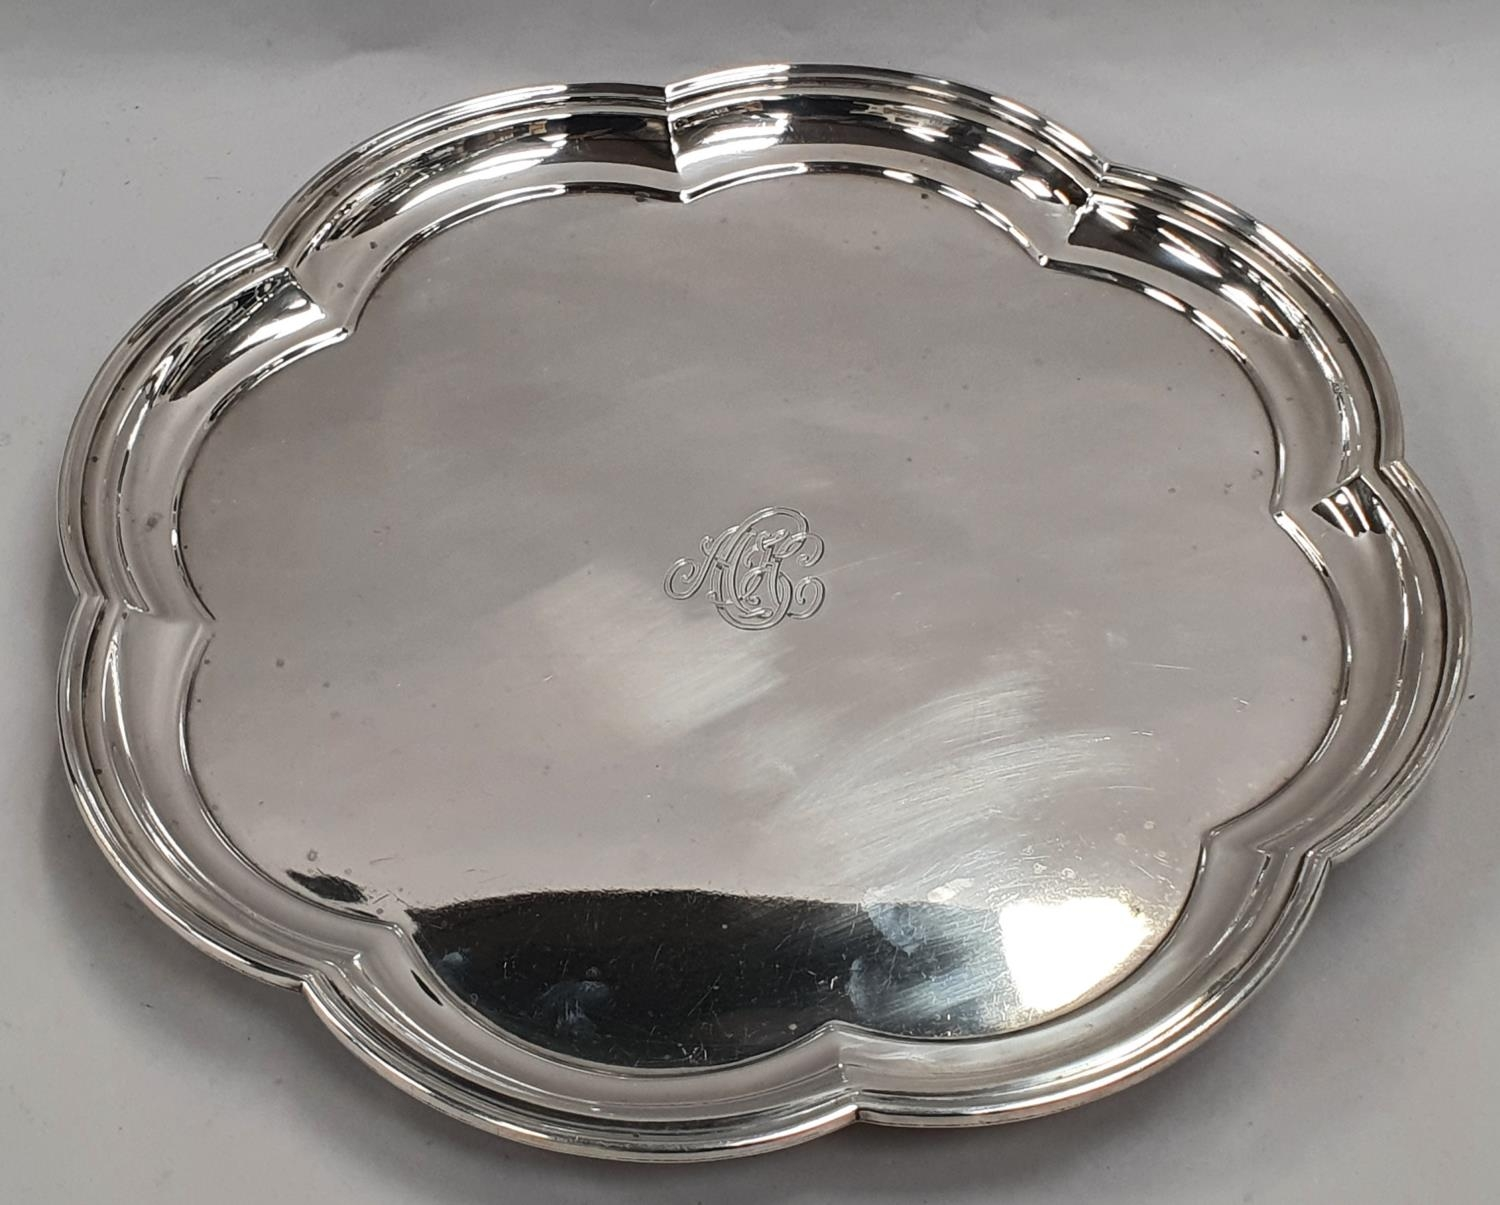 Sterling silver salver with scalloped rim - Sheffield 1929 by Mappin & Webb - approx 1181 grams. - Image 2 of 5